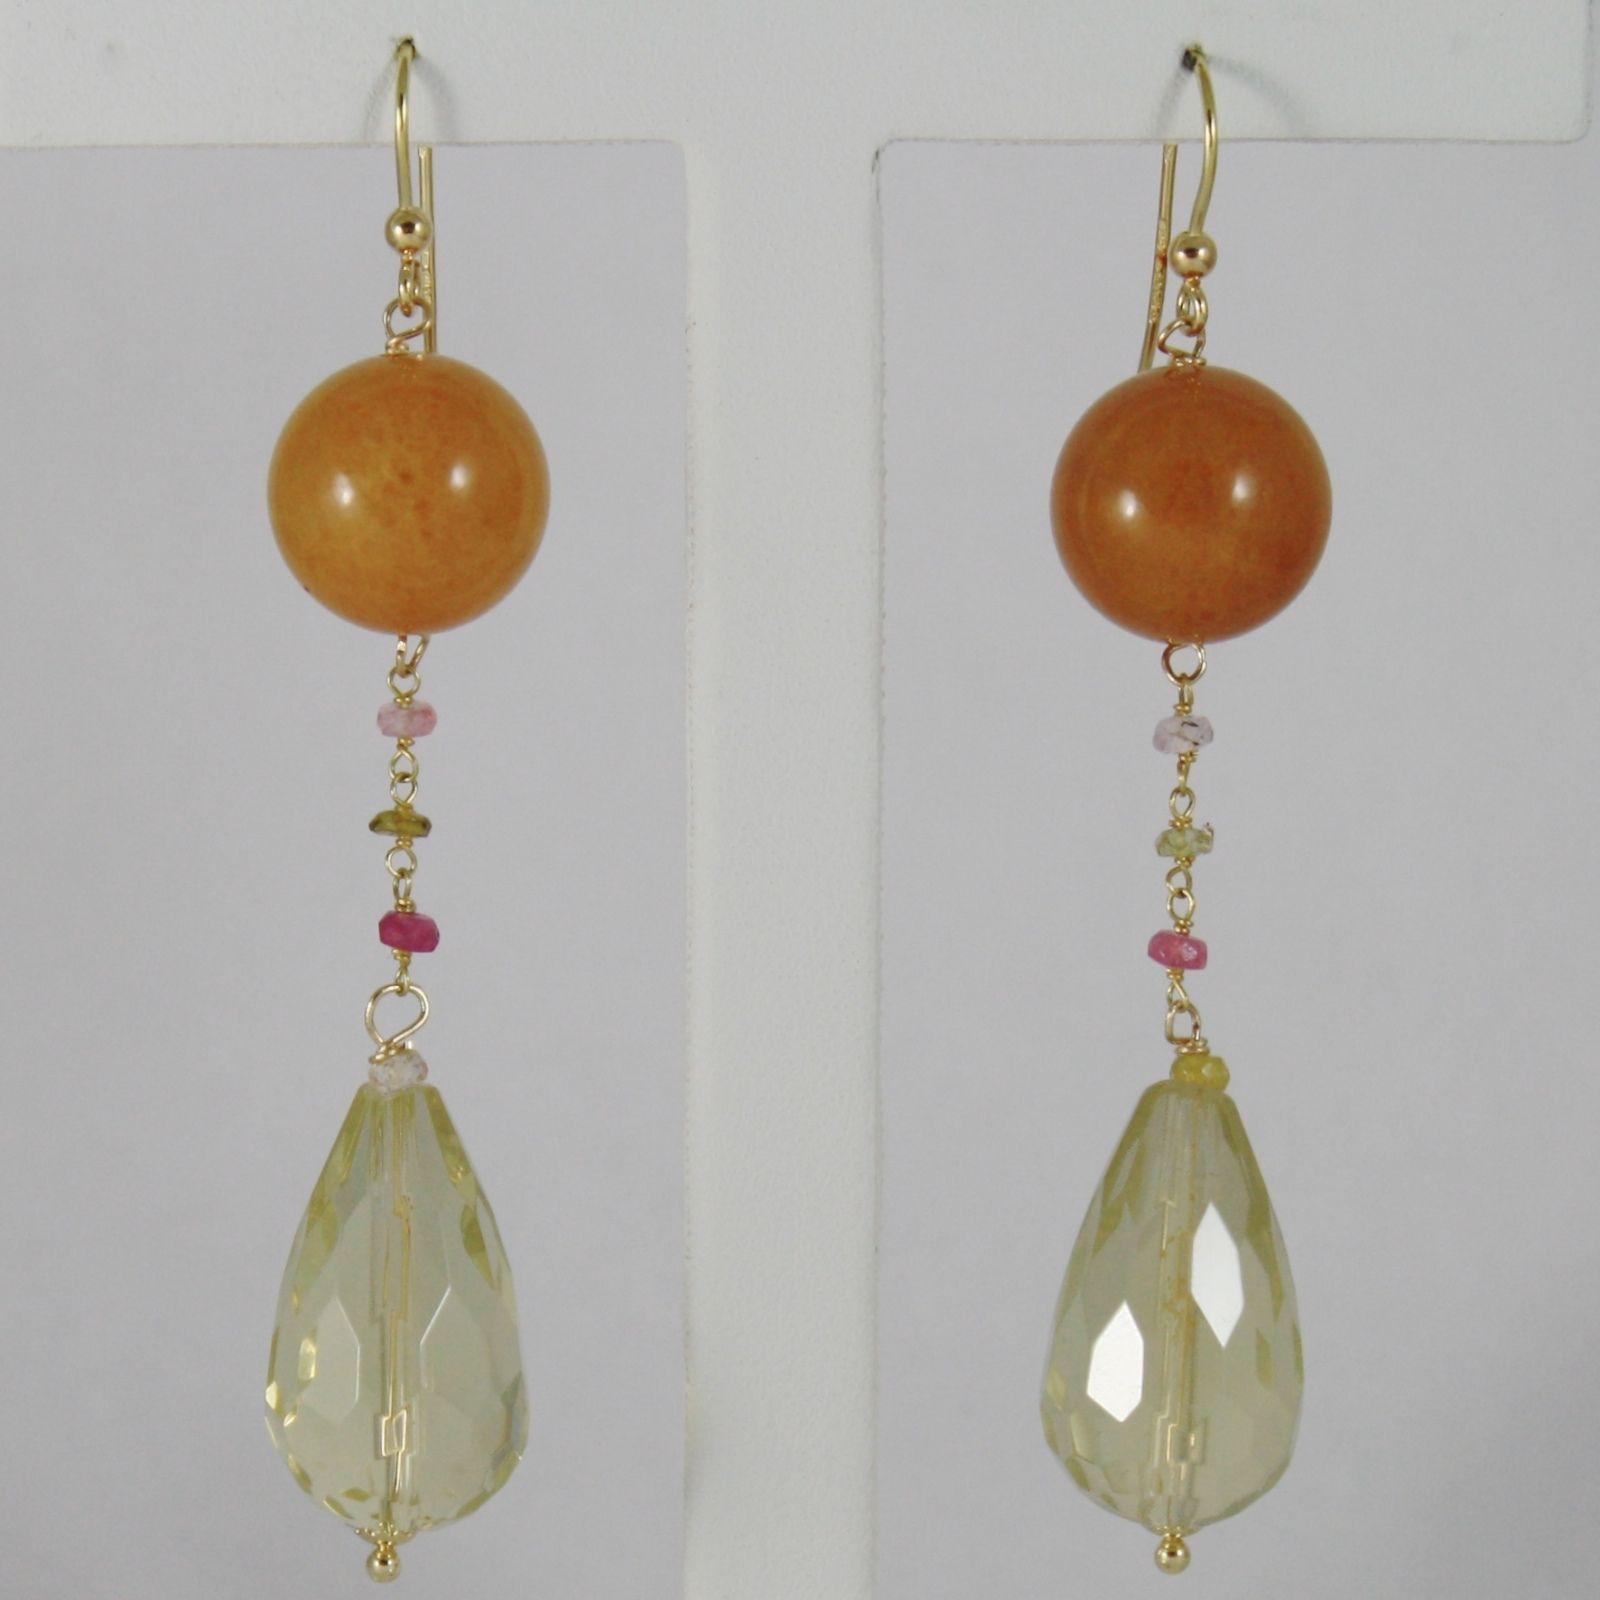 18K YELLOW GOLD PENDANT EARRINGS ARAGONITE LEMON QUARTZ TOURMALINE MADE IN ITALY